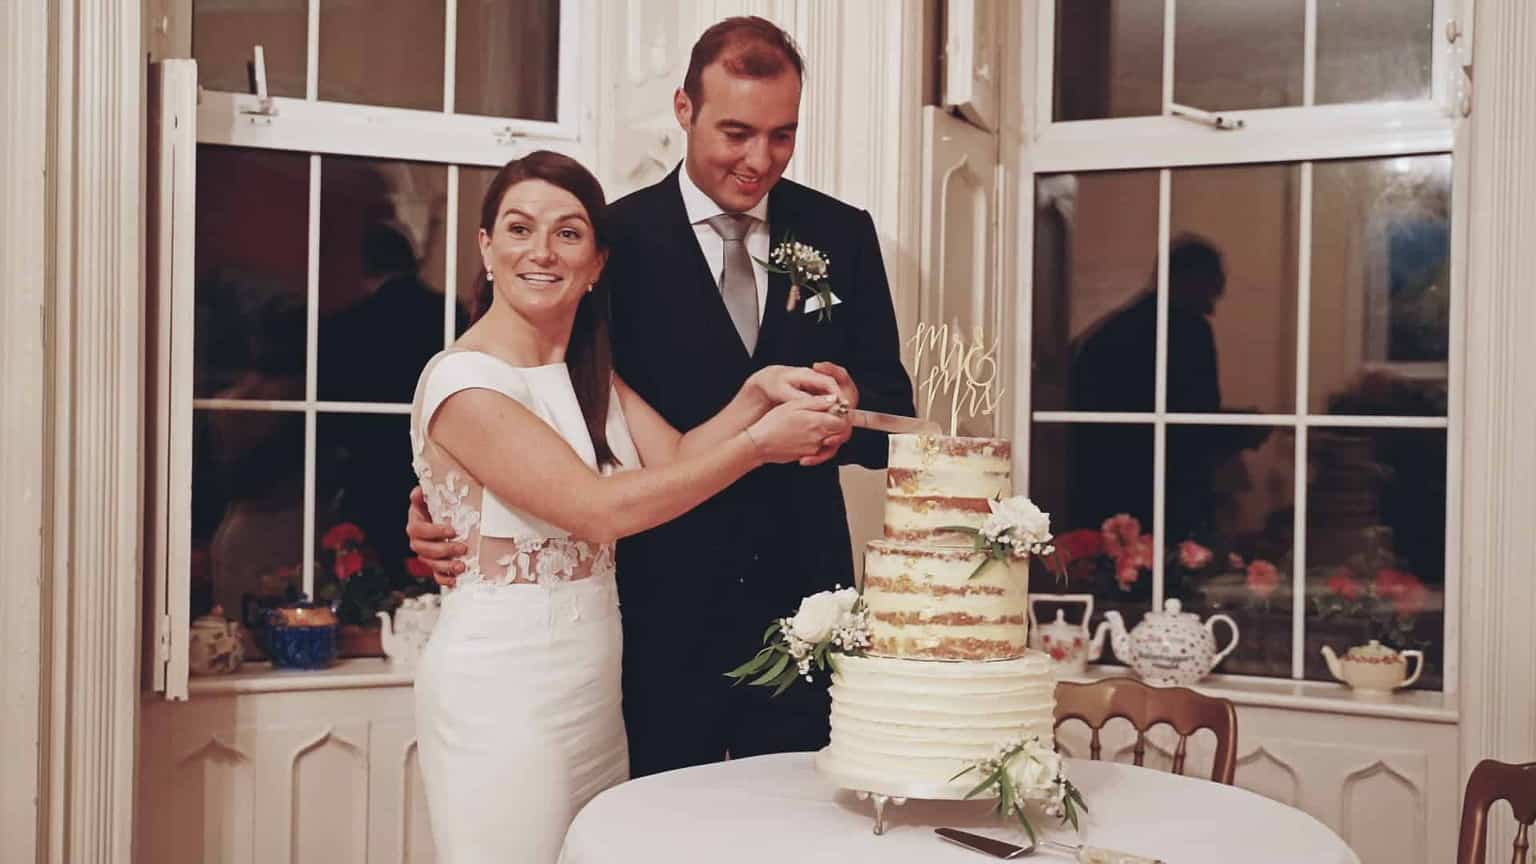 Bride and groom are cutting wedding cake.